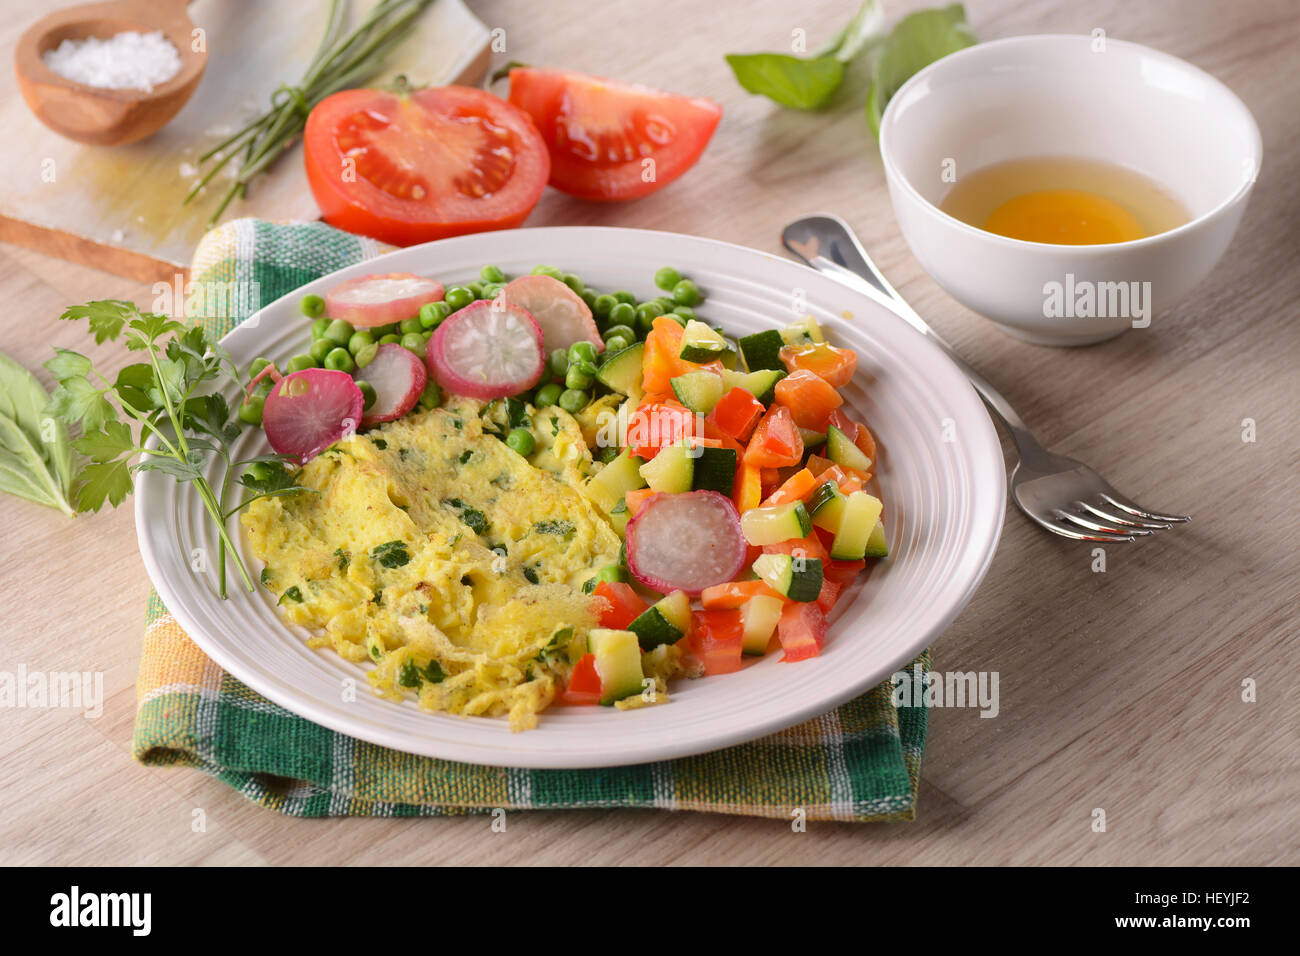 egg omelet and side dish assorted vegetables - Stock Image